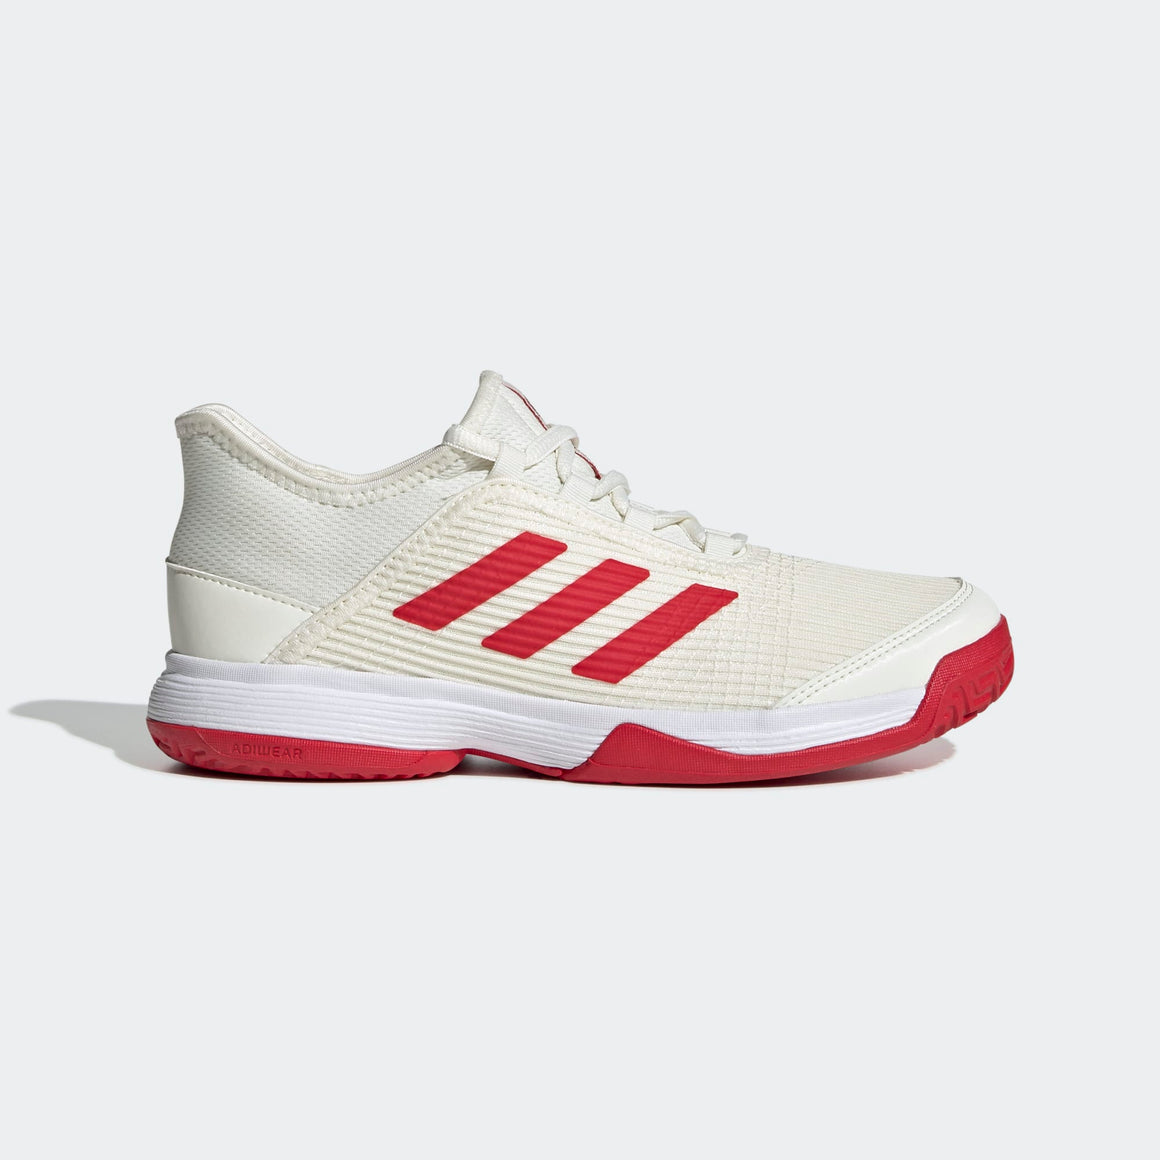 Adidas Adizero Club Shoes